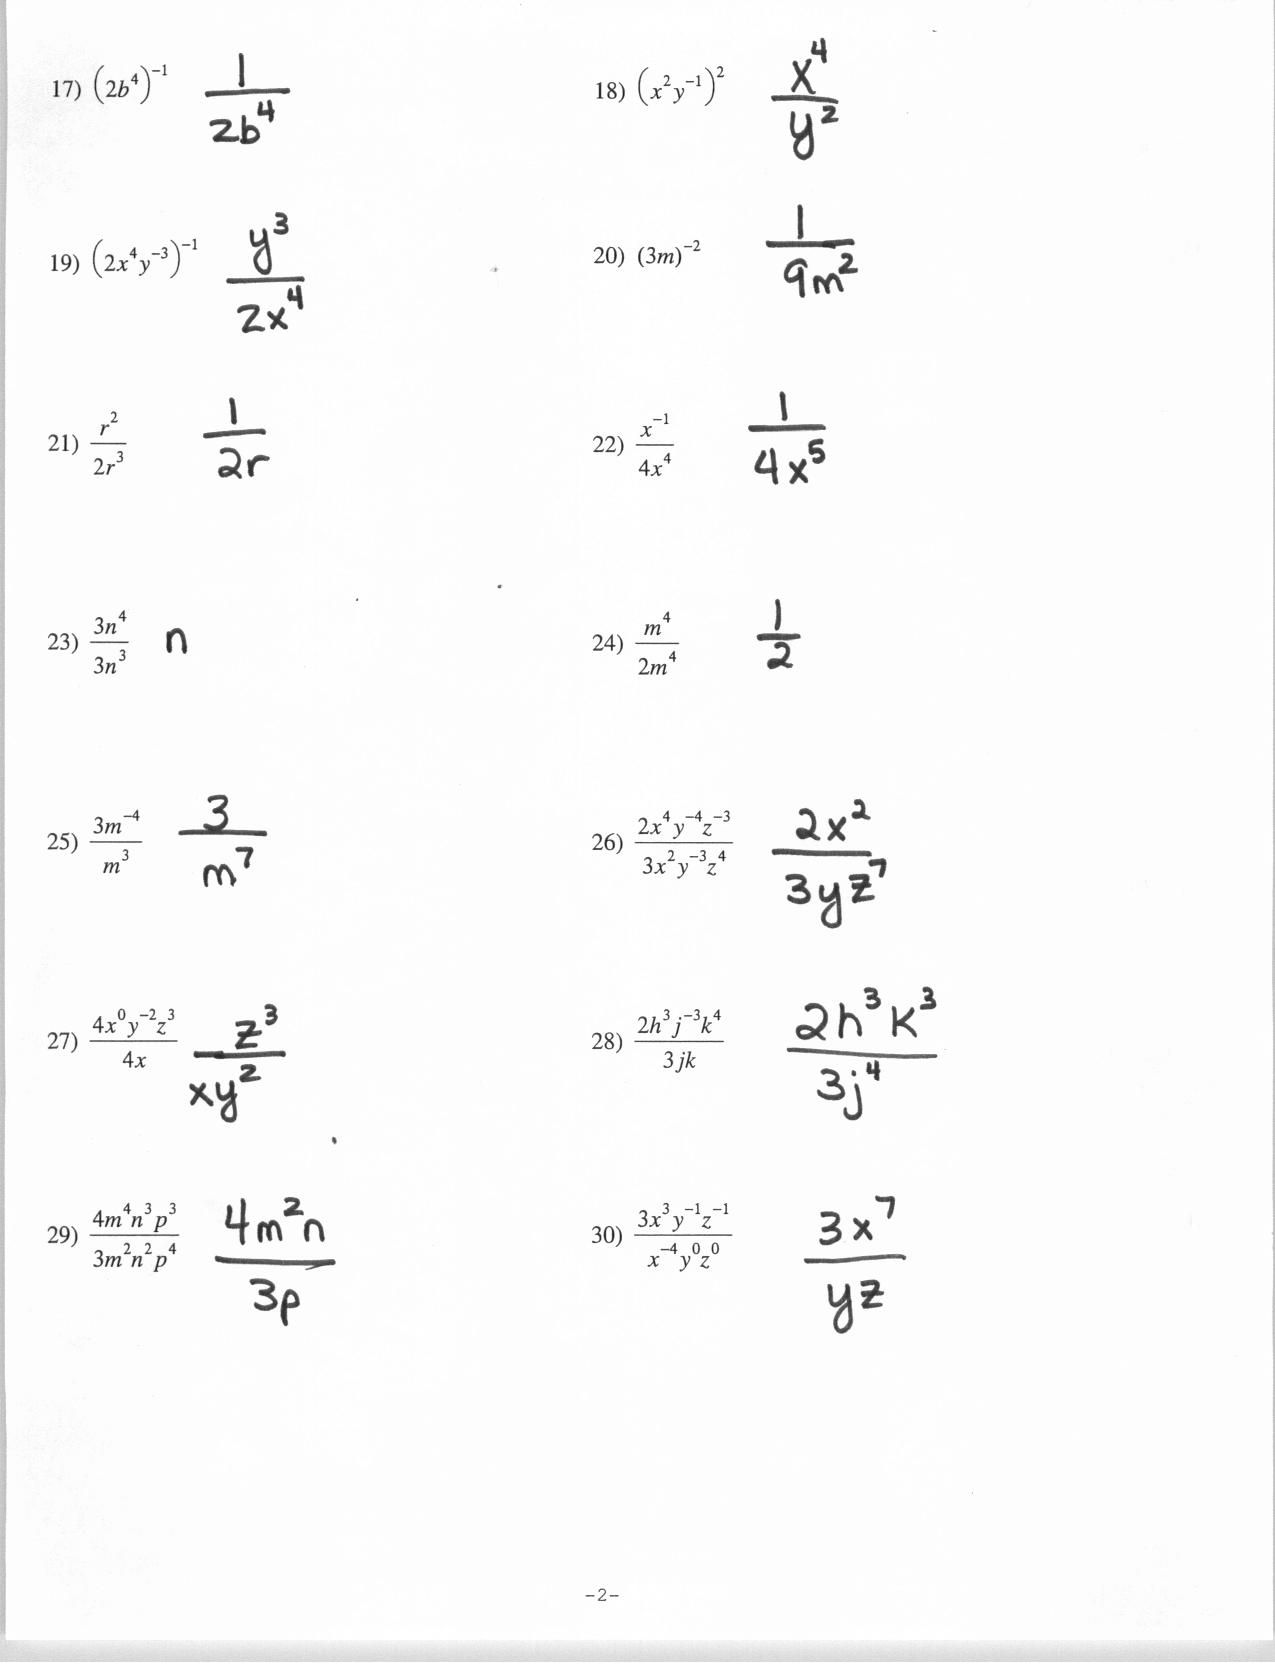 Printables Algebra 1 Exponents Worksheet worksheet properties of exponents answers kerriwaller 1000 images about algebra on pinterest mobile app equations and